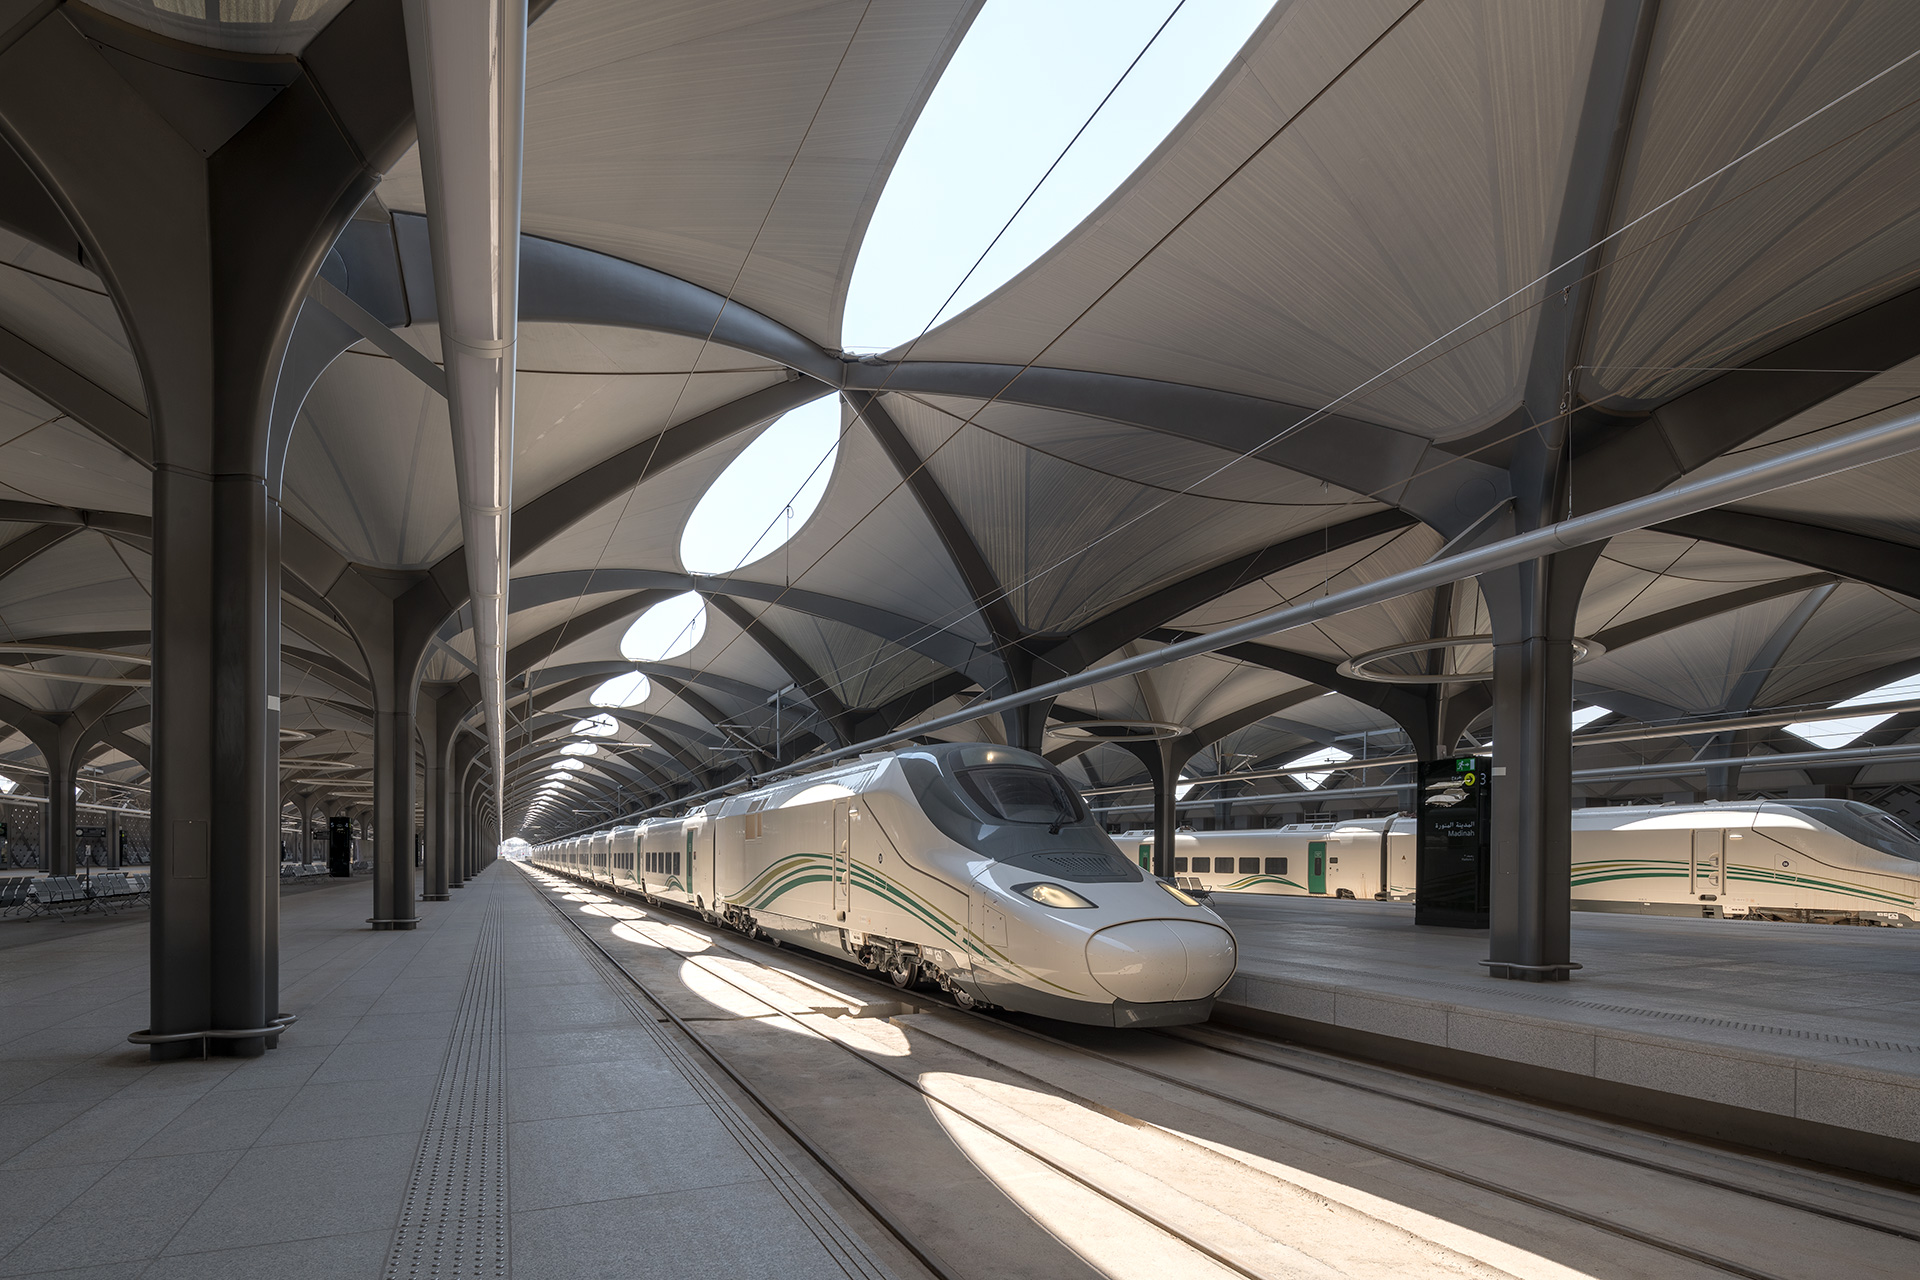 Madinah Metro has steel columns and arches forming freestanding structural trees that are repeated on a square grid, connecting to form a flexible vaulted roof, inspired by the colonnades found in many traditional buildings in the region | Haramain High Speed Rail | Foster + Partners| STIR